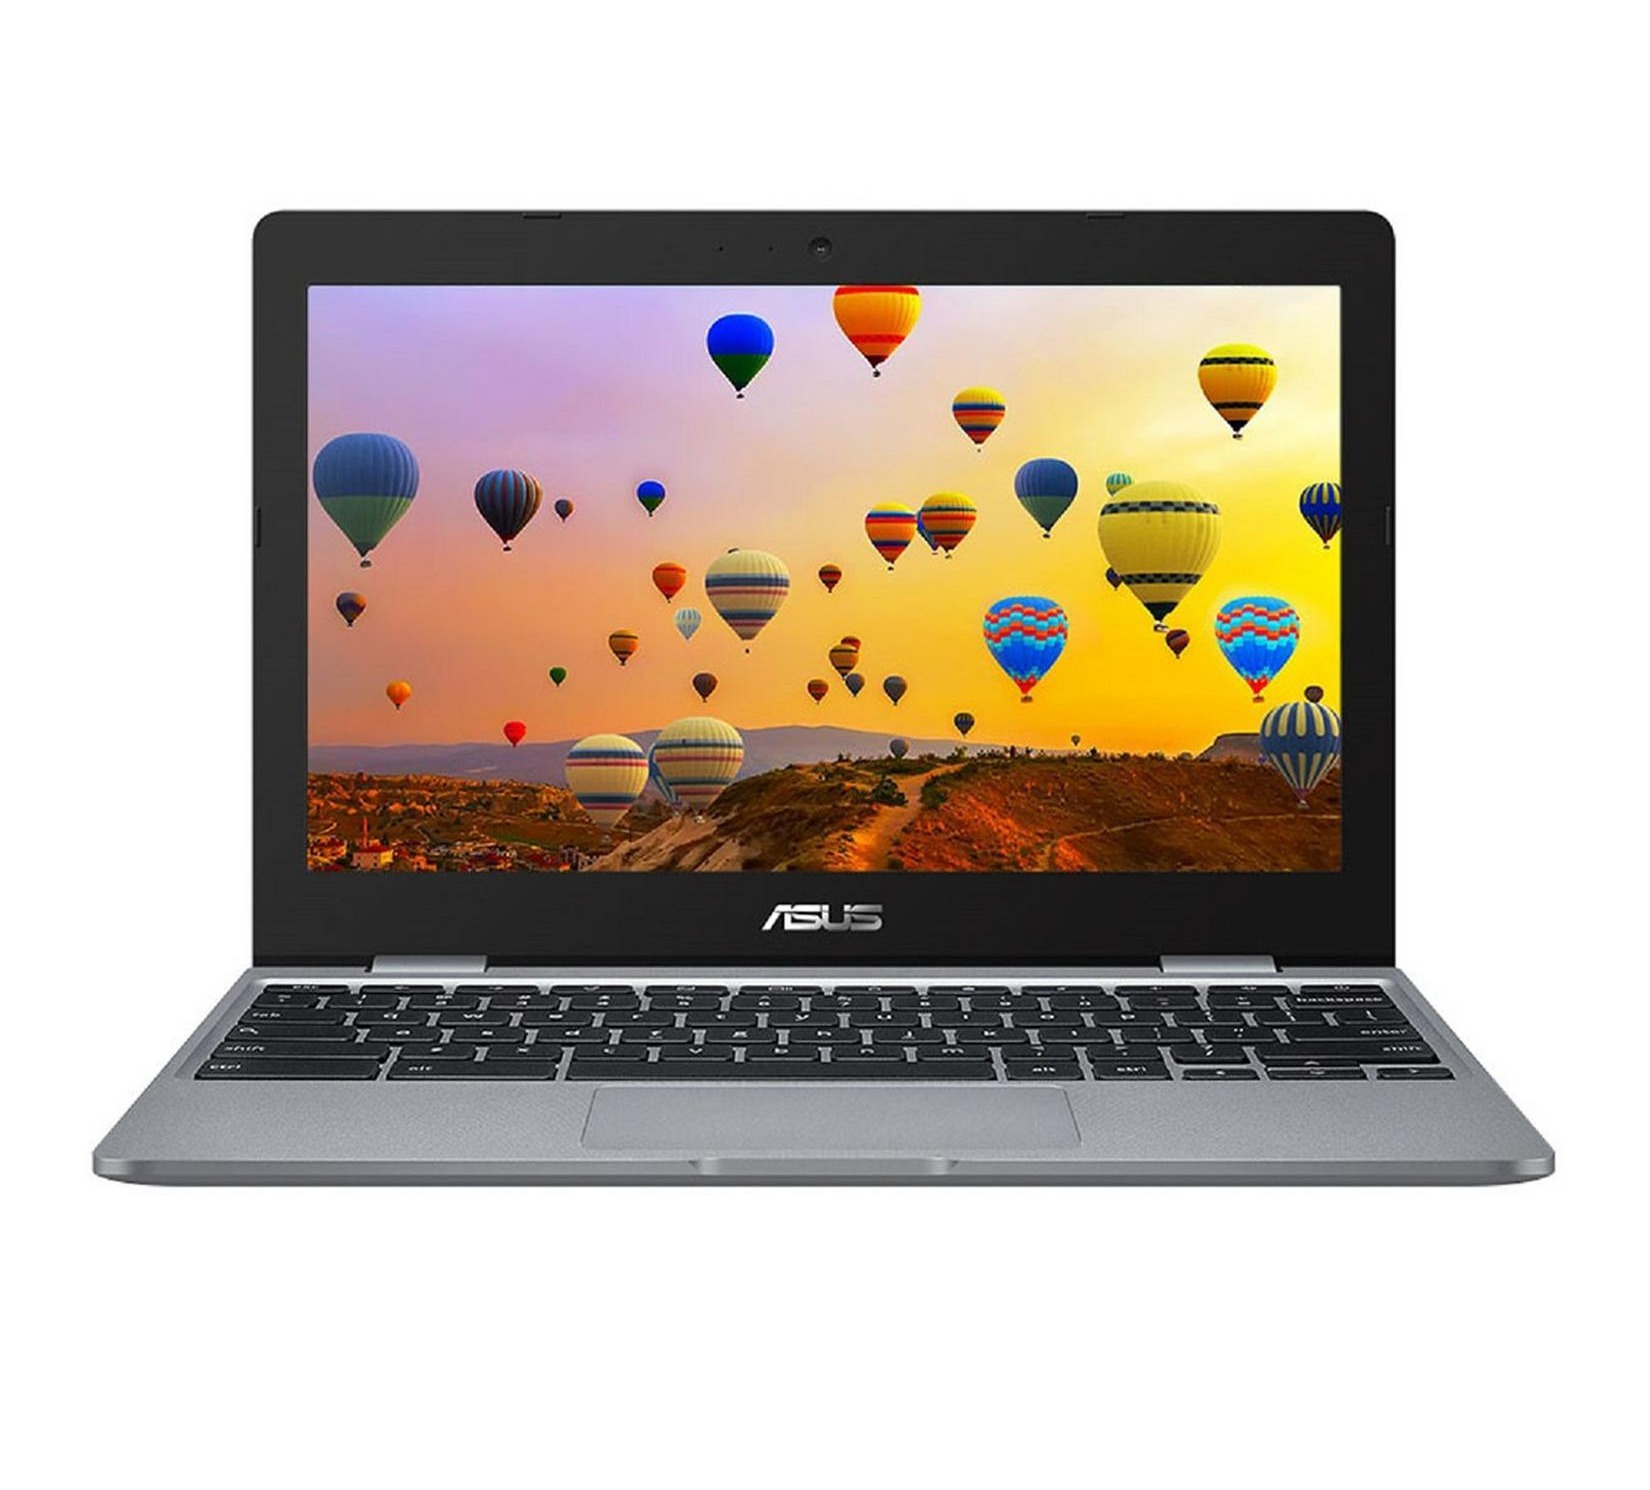 Support your child's online learning with an Asus laptop